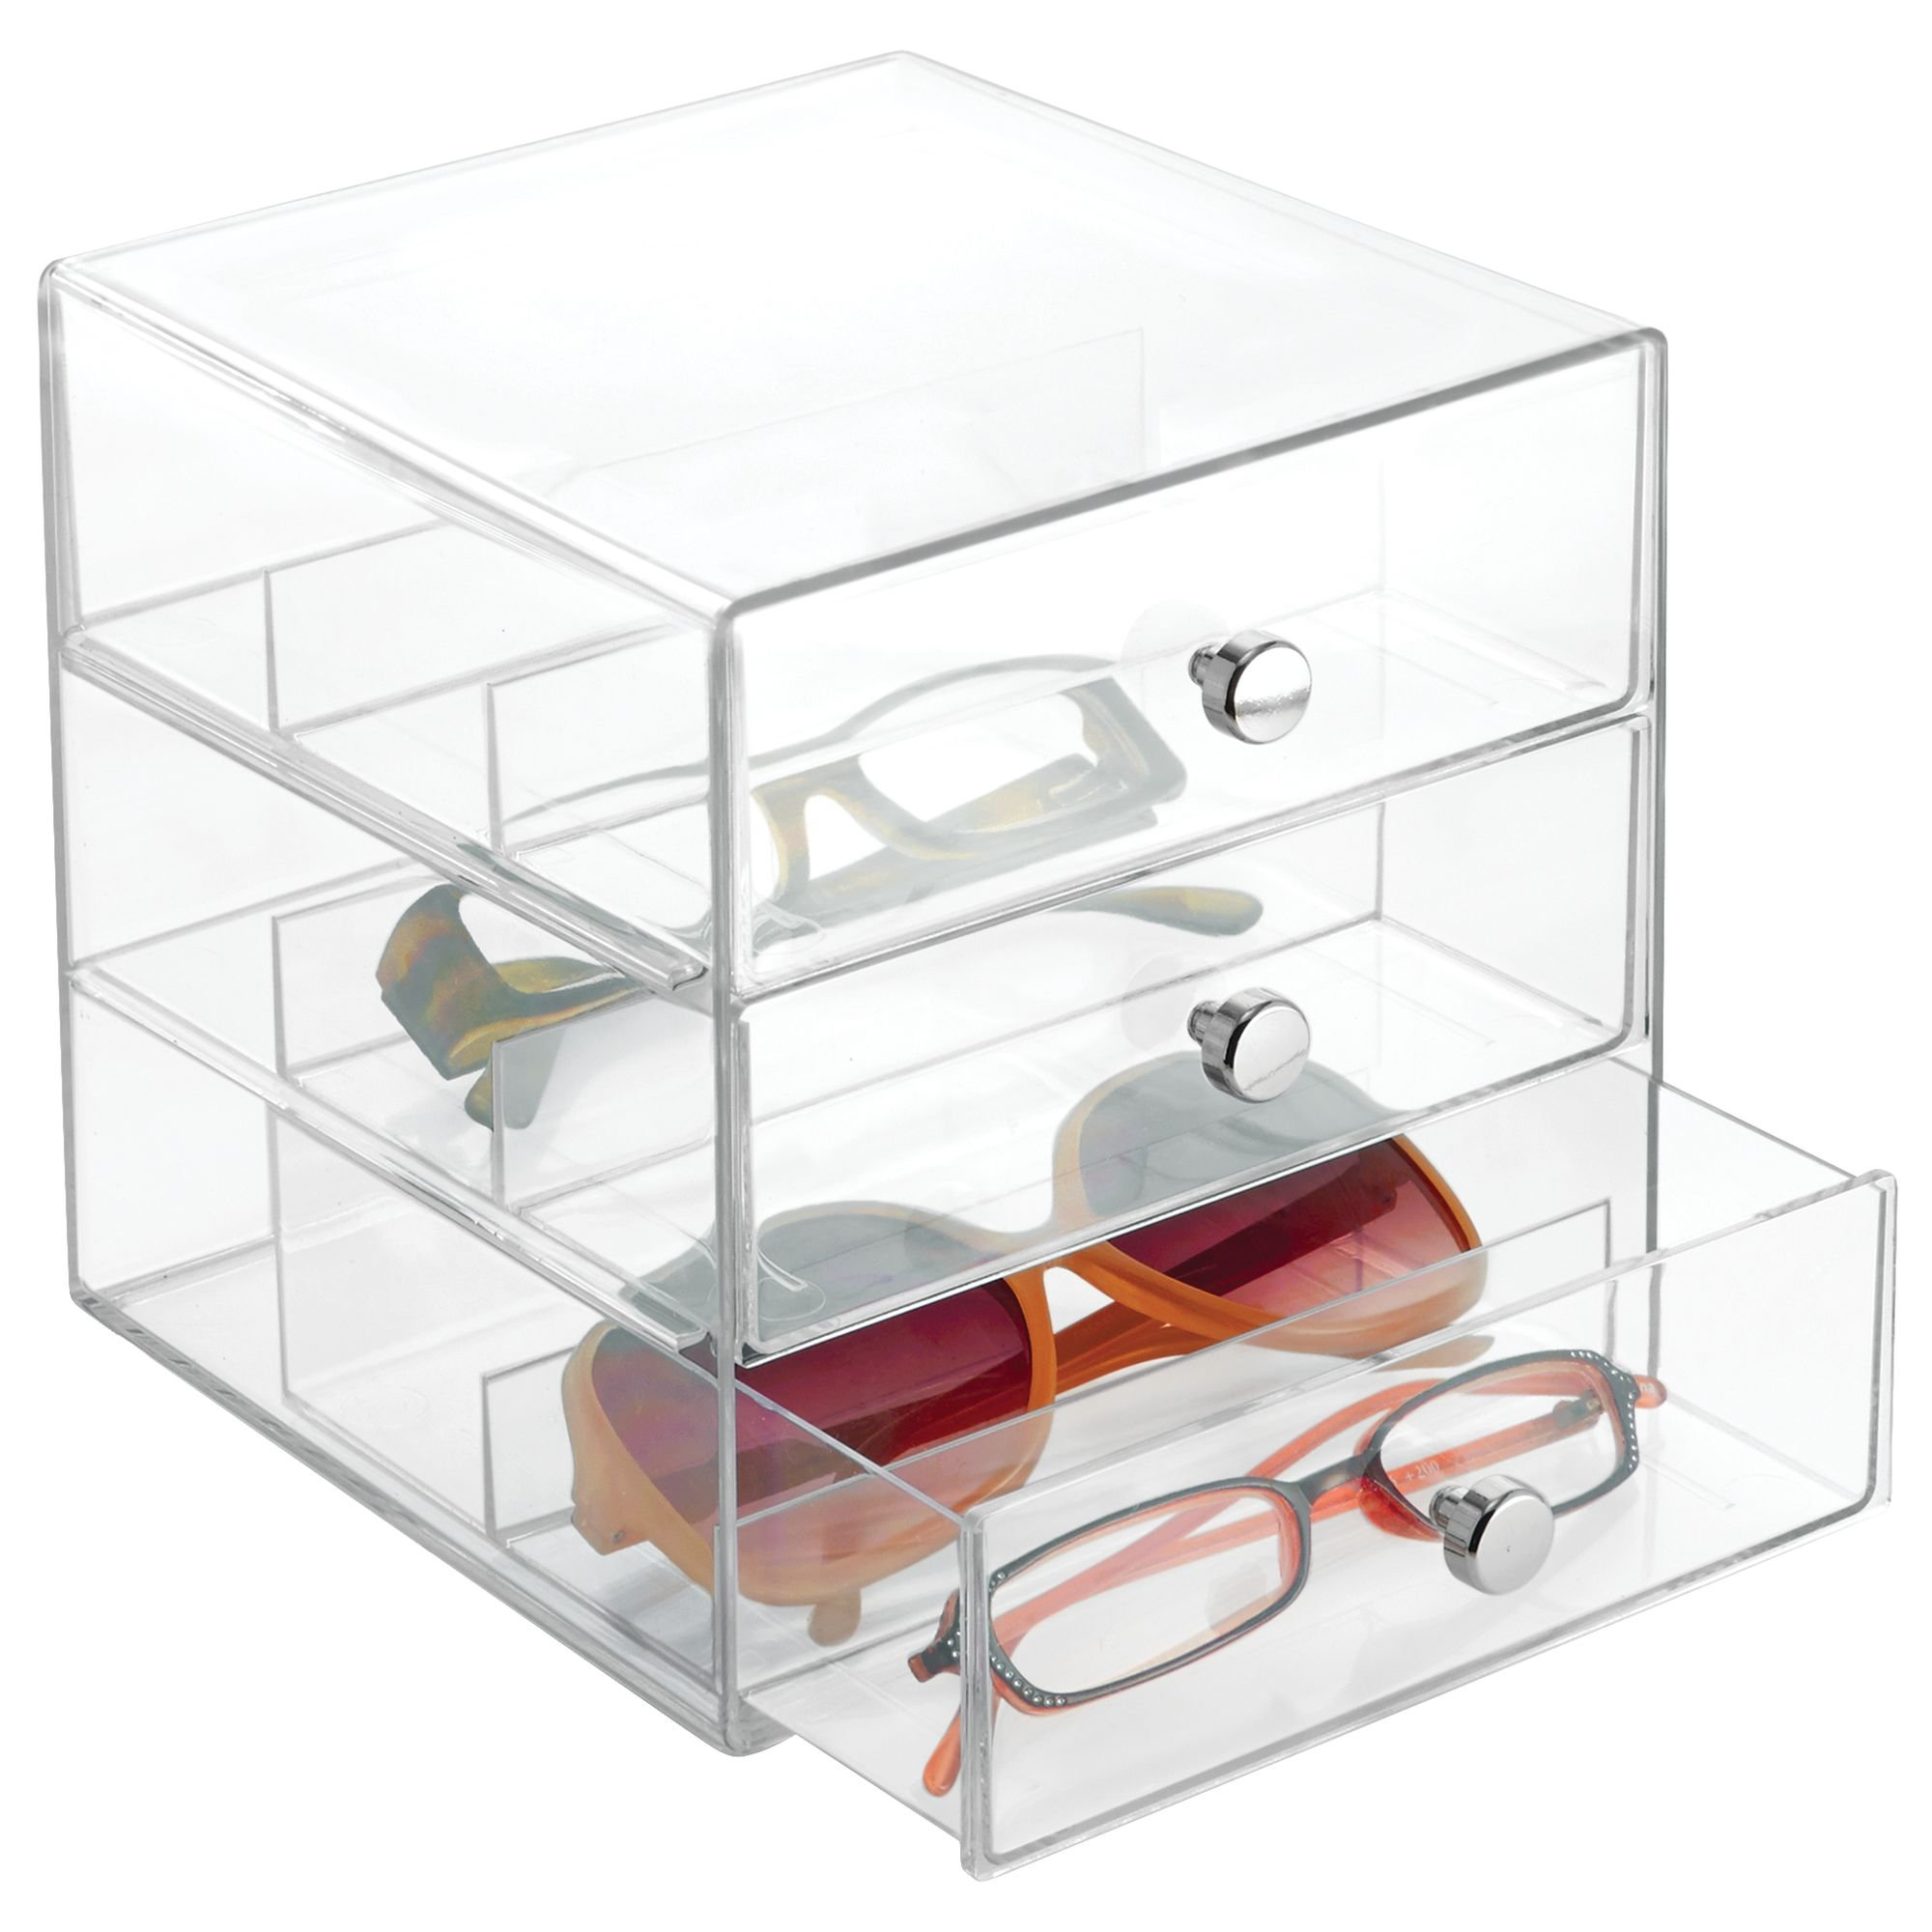 InterDesign Clarity - Stackable 3-Drawer Organizer for Glasses - Clear - 6.5 x 6.5 x 6.5 inches